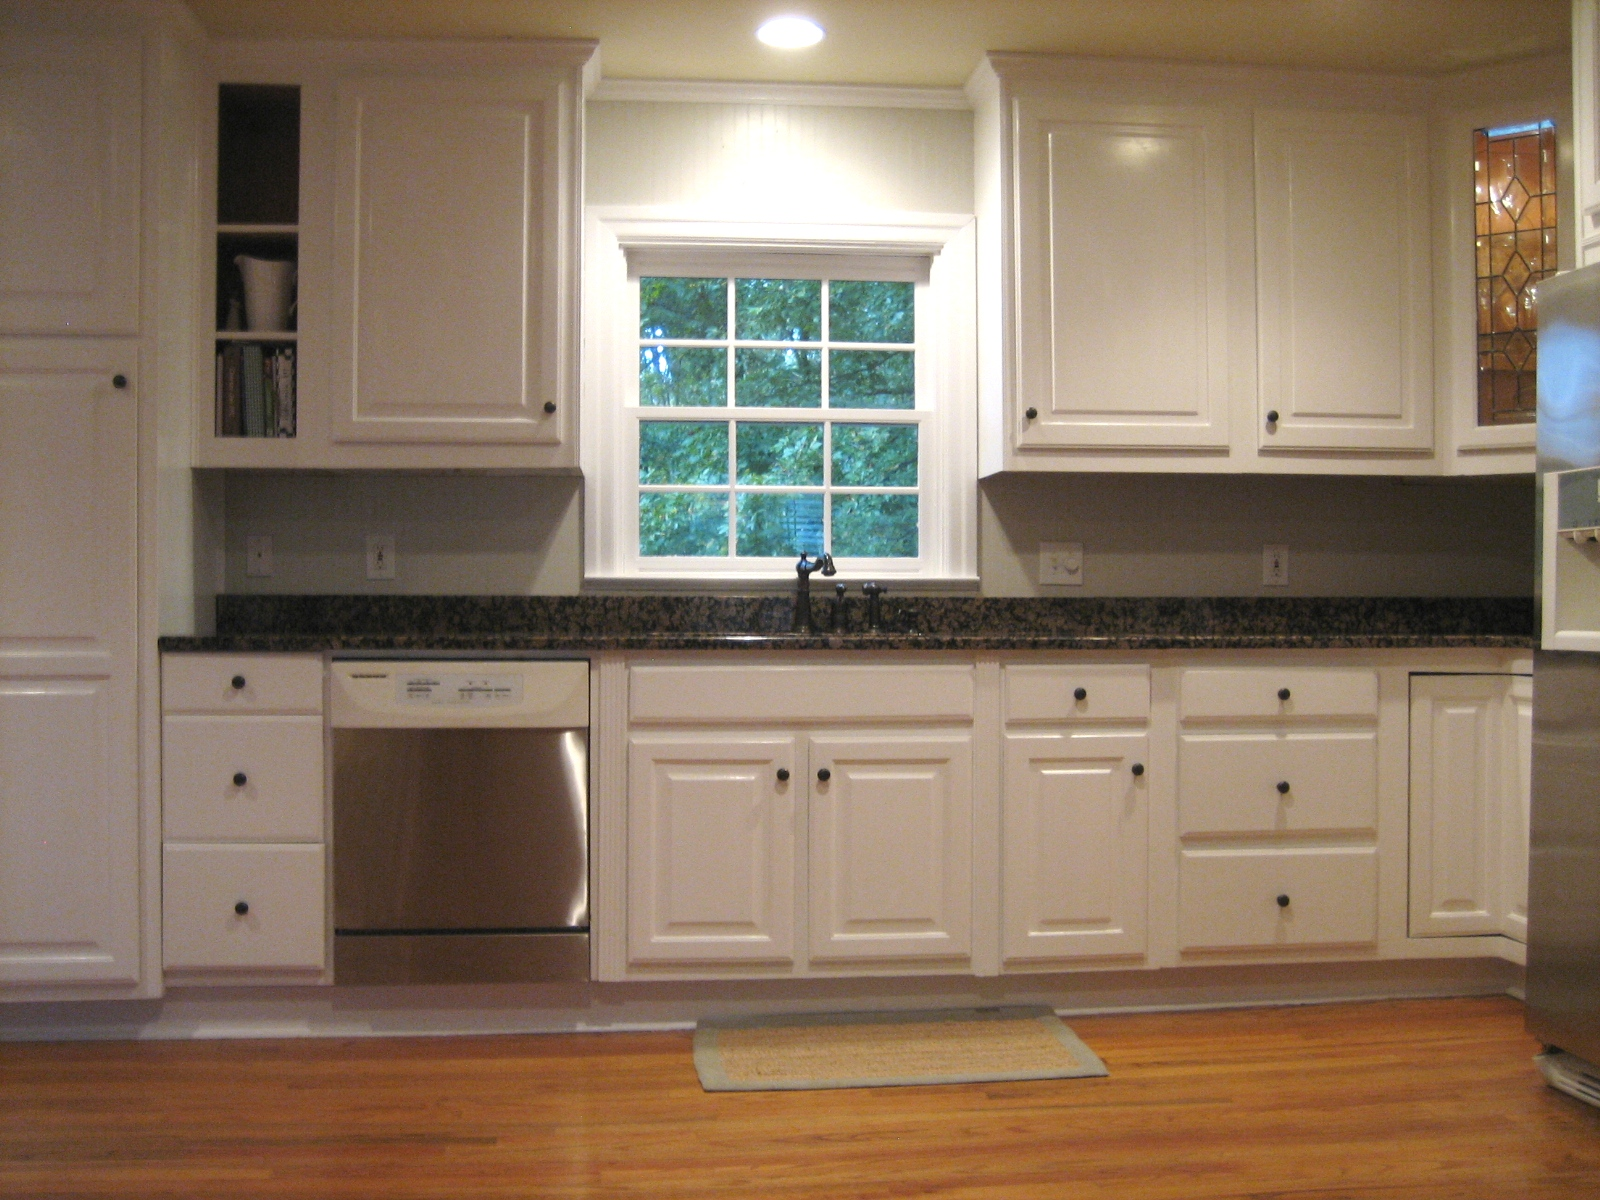 white kitchen wall cabinets farm sink cream color and slate floor grey